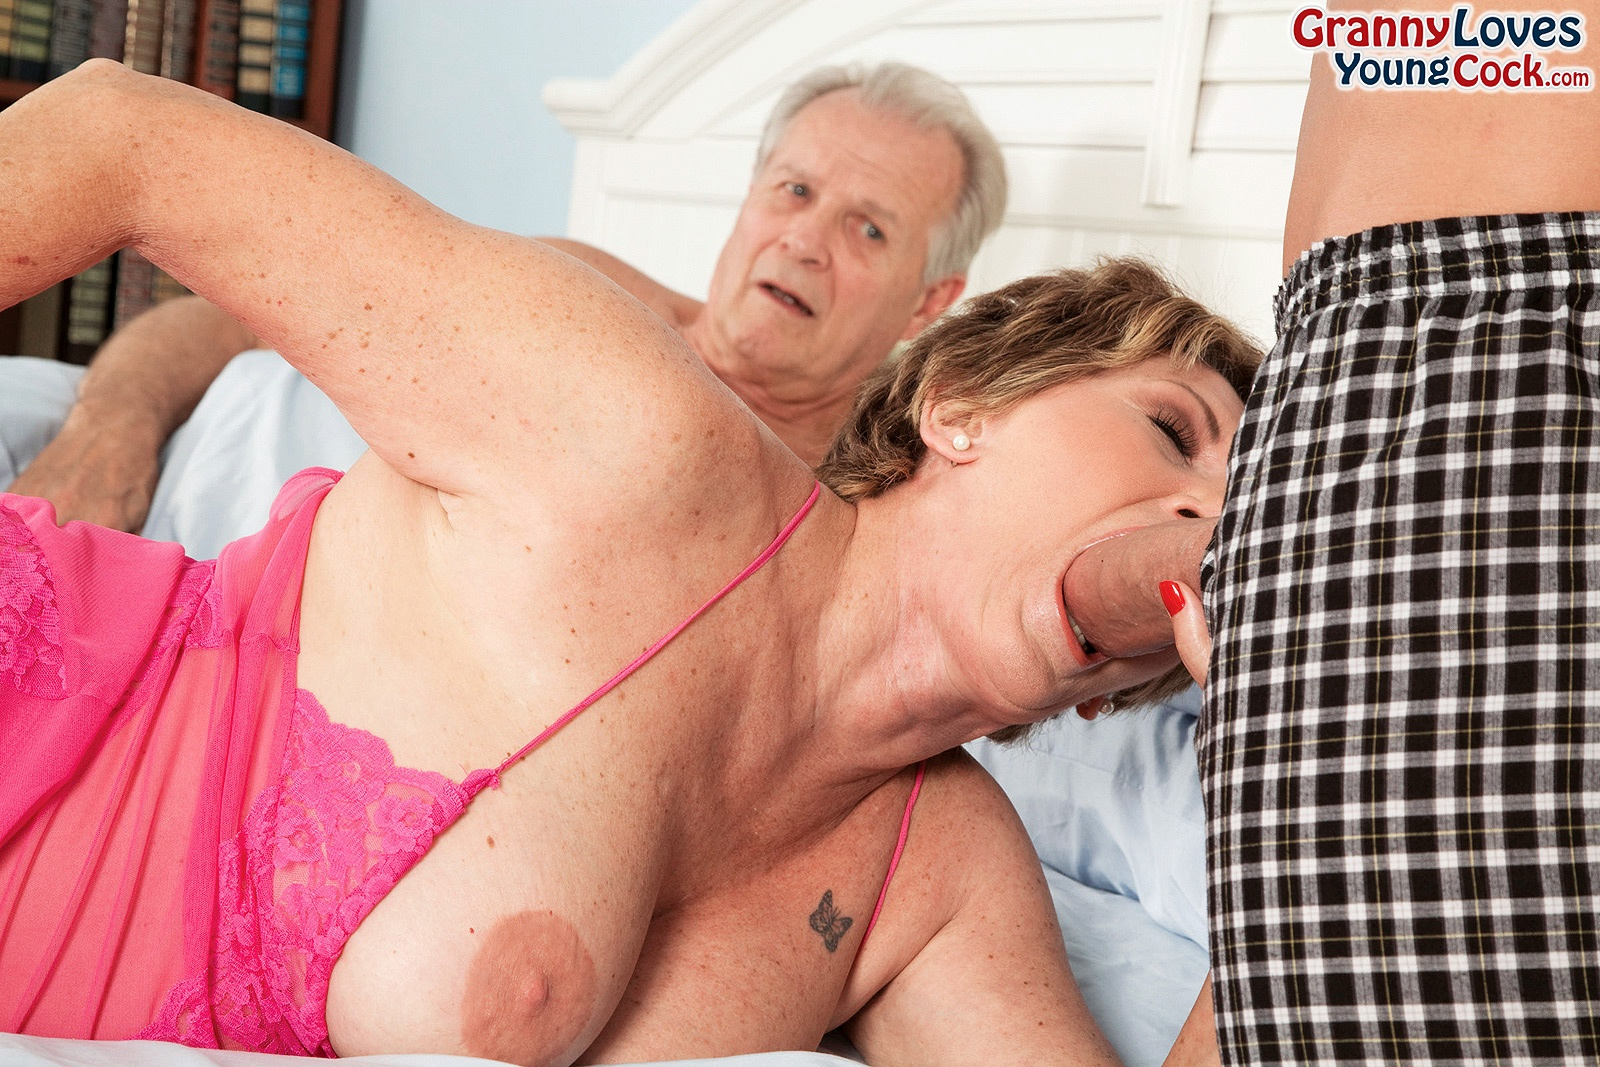 Granny loves young cock free porn